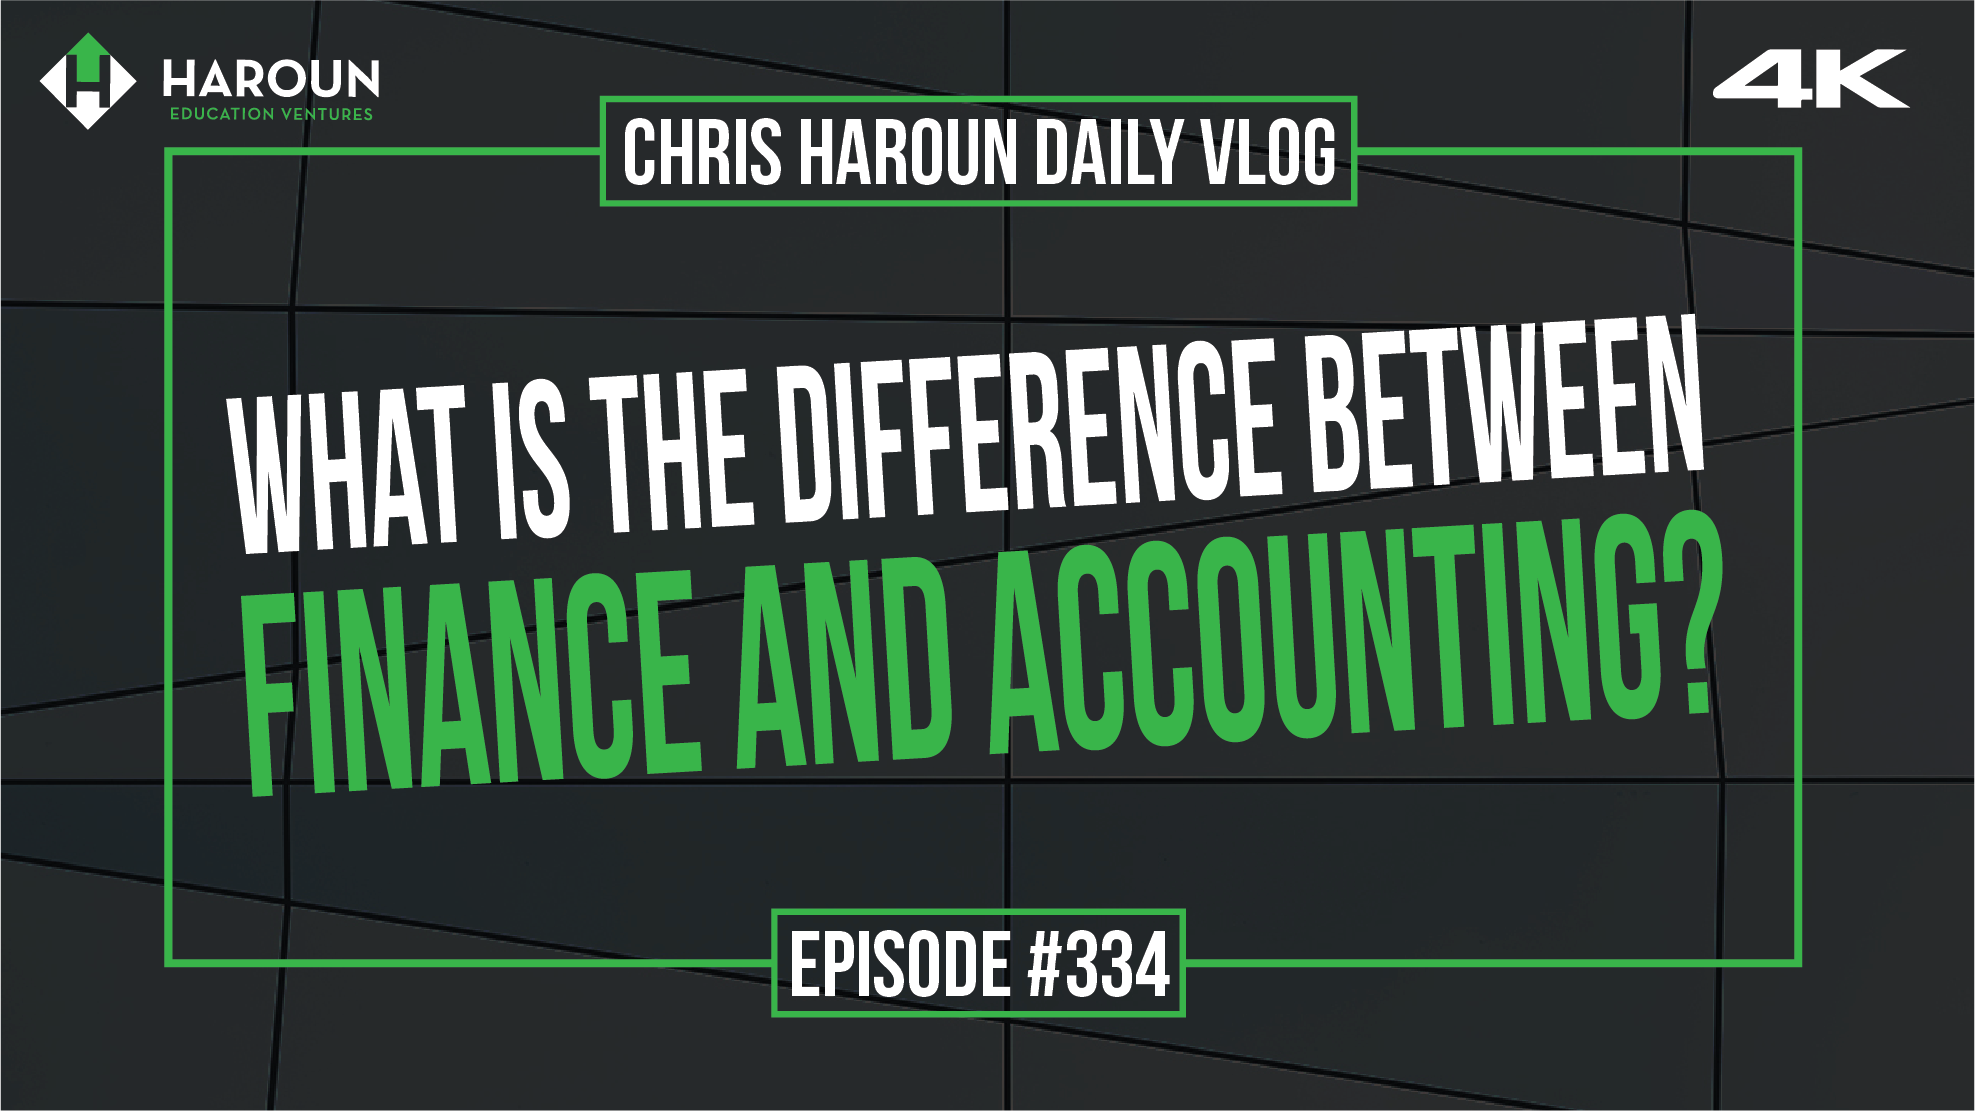 VLOG_334_6_30_2019_What is the Difference Between Finance and Accounting?.png